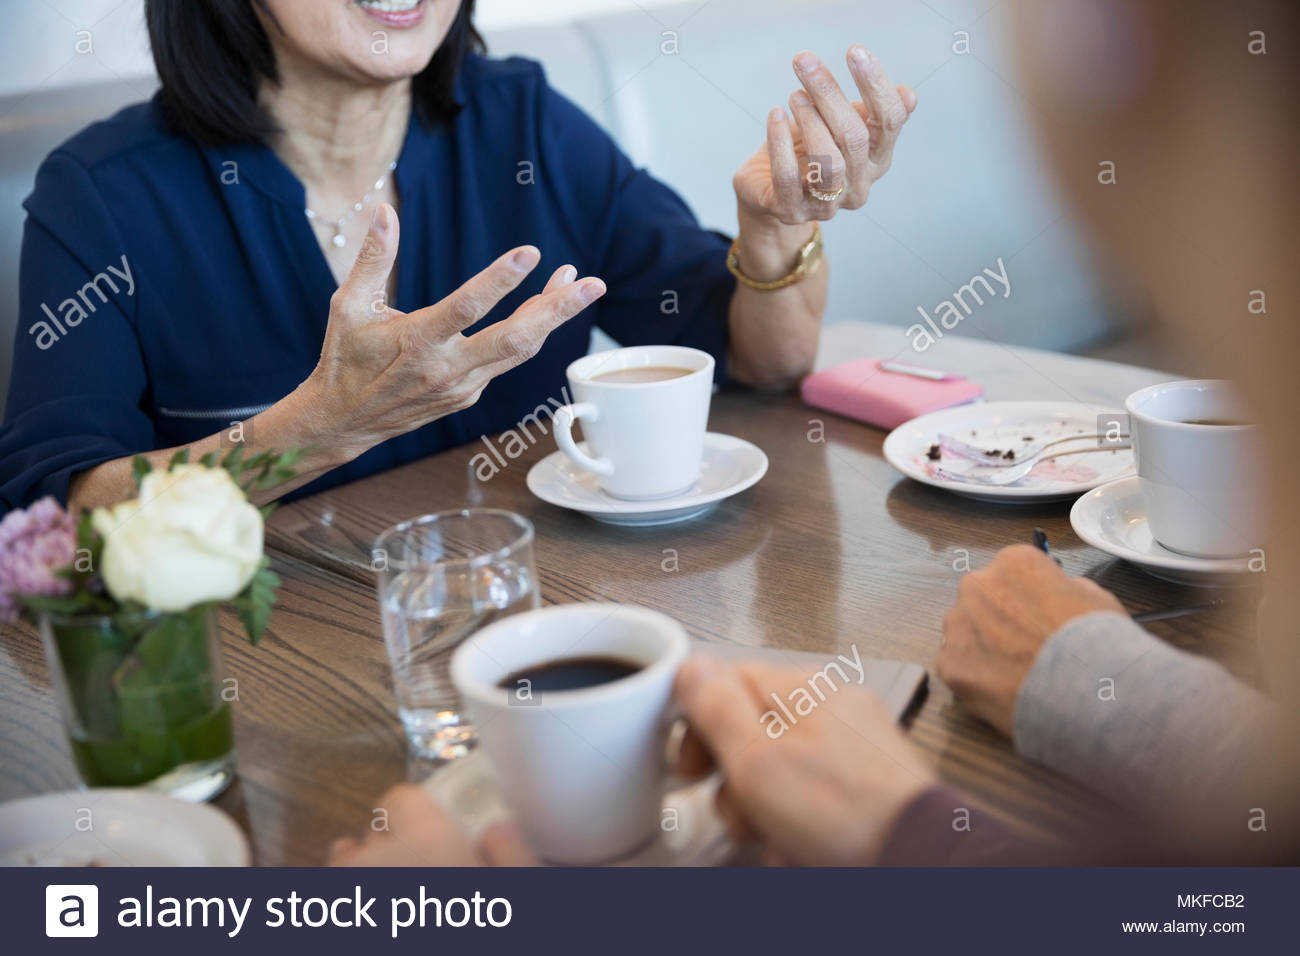 Senior woman talking to friends, gesturing with hands in cafe - Stock Image